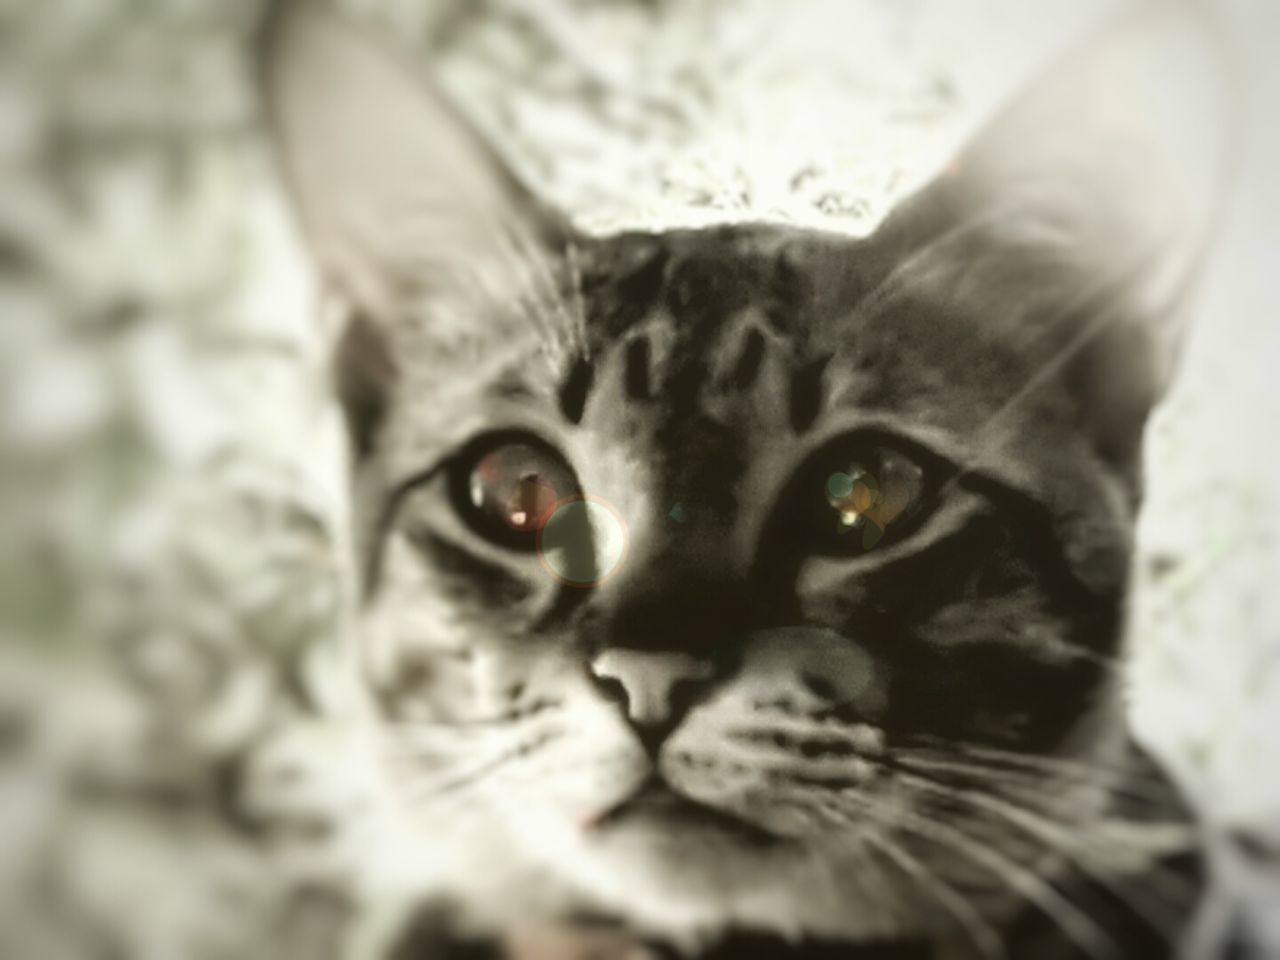 domestic cat, feline, pets, domestic animals, looking at camera, cat, mammal, animal themes, portrait, one animal, whisker, indoors, close-up, no people, day